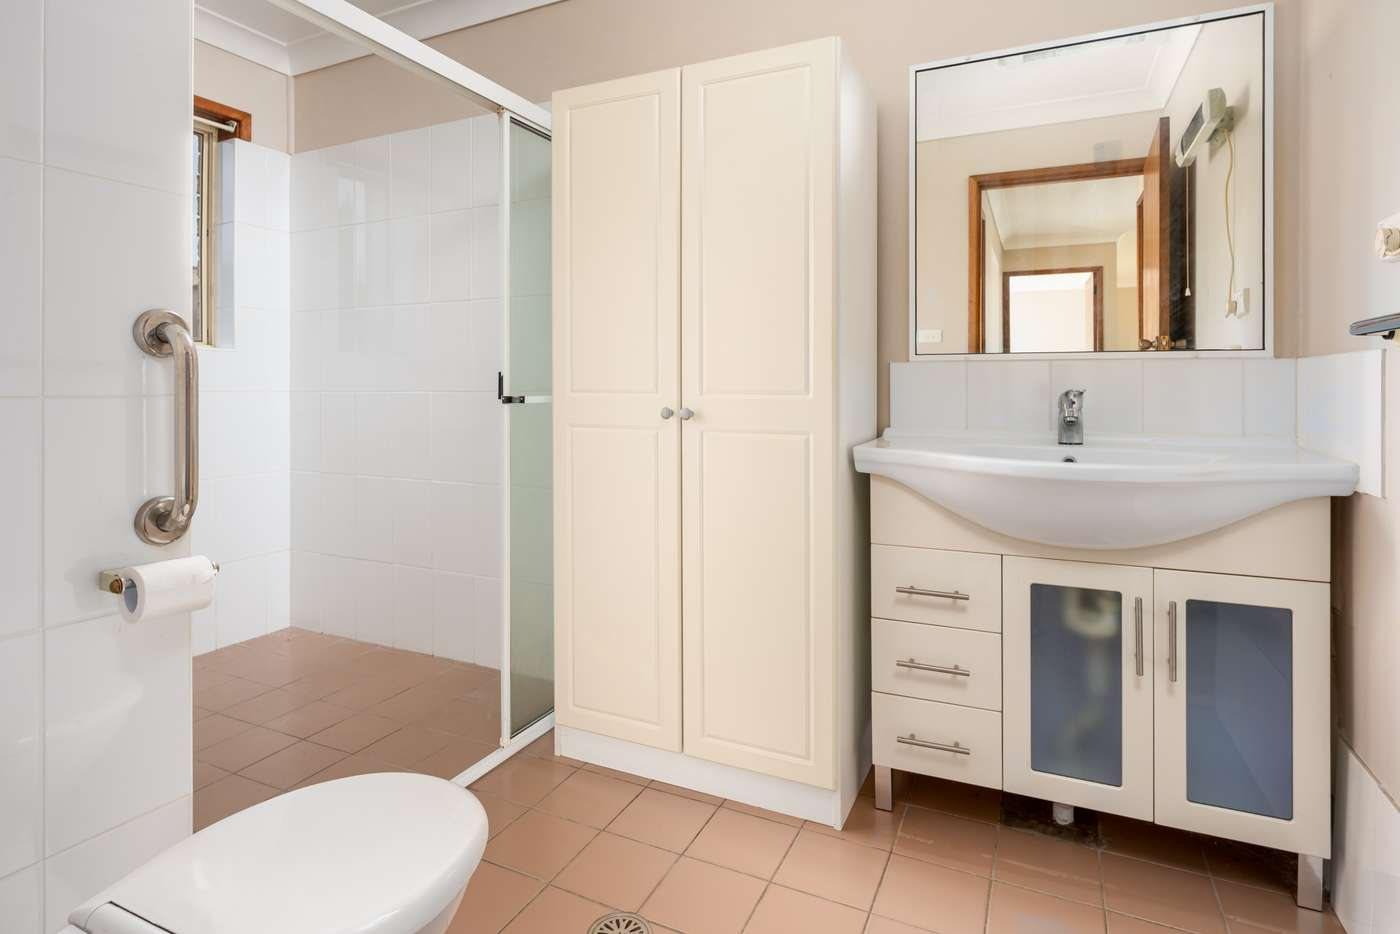 Sixth view of Homely unit listing, 1/111 George Street, East Maitland NSW 2323